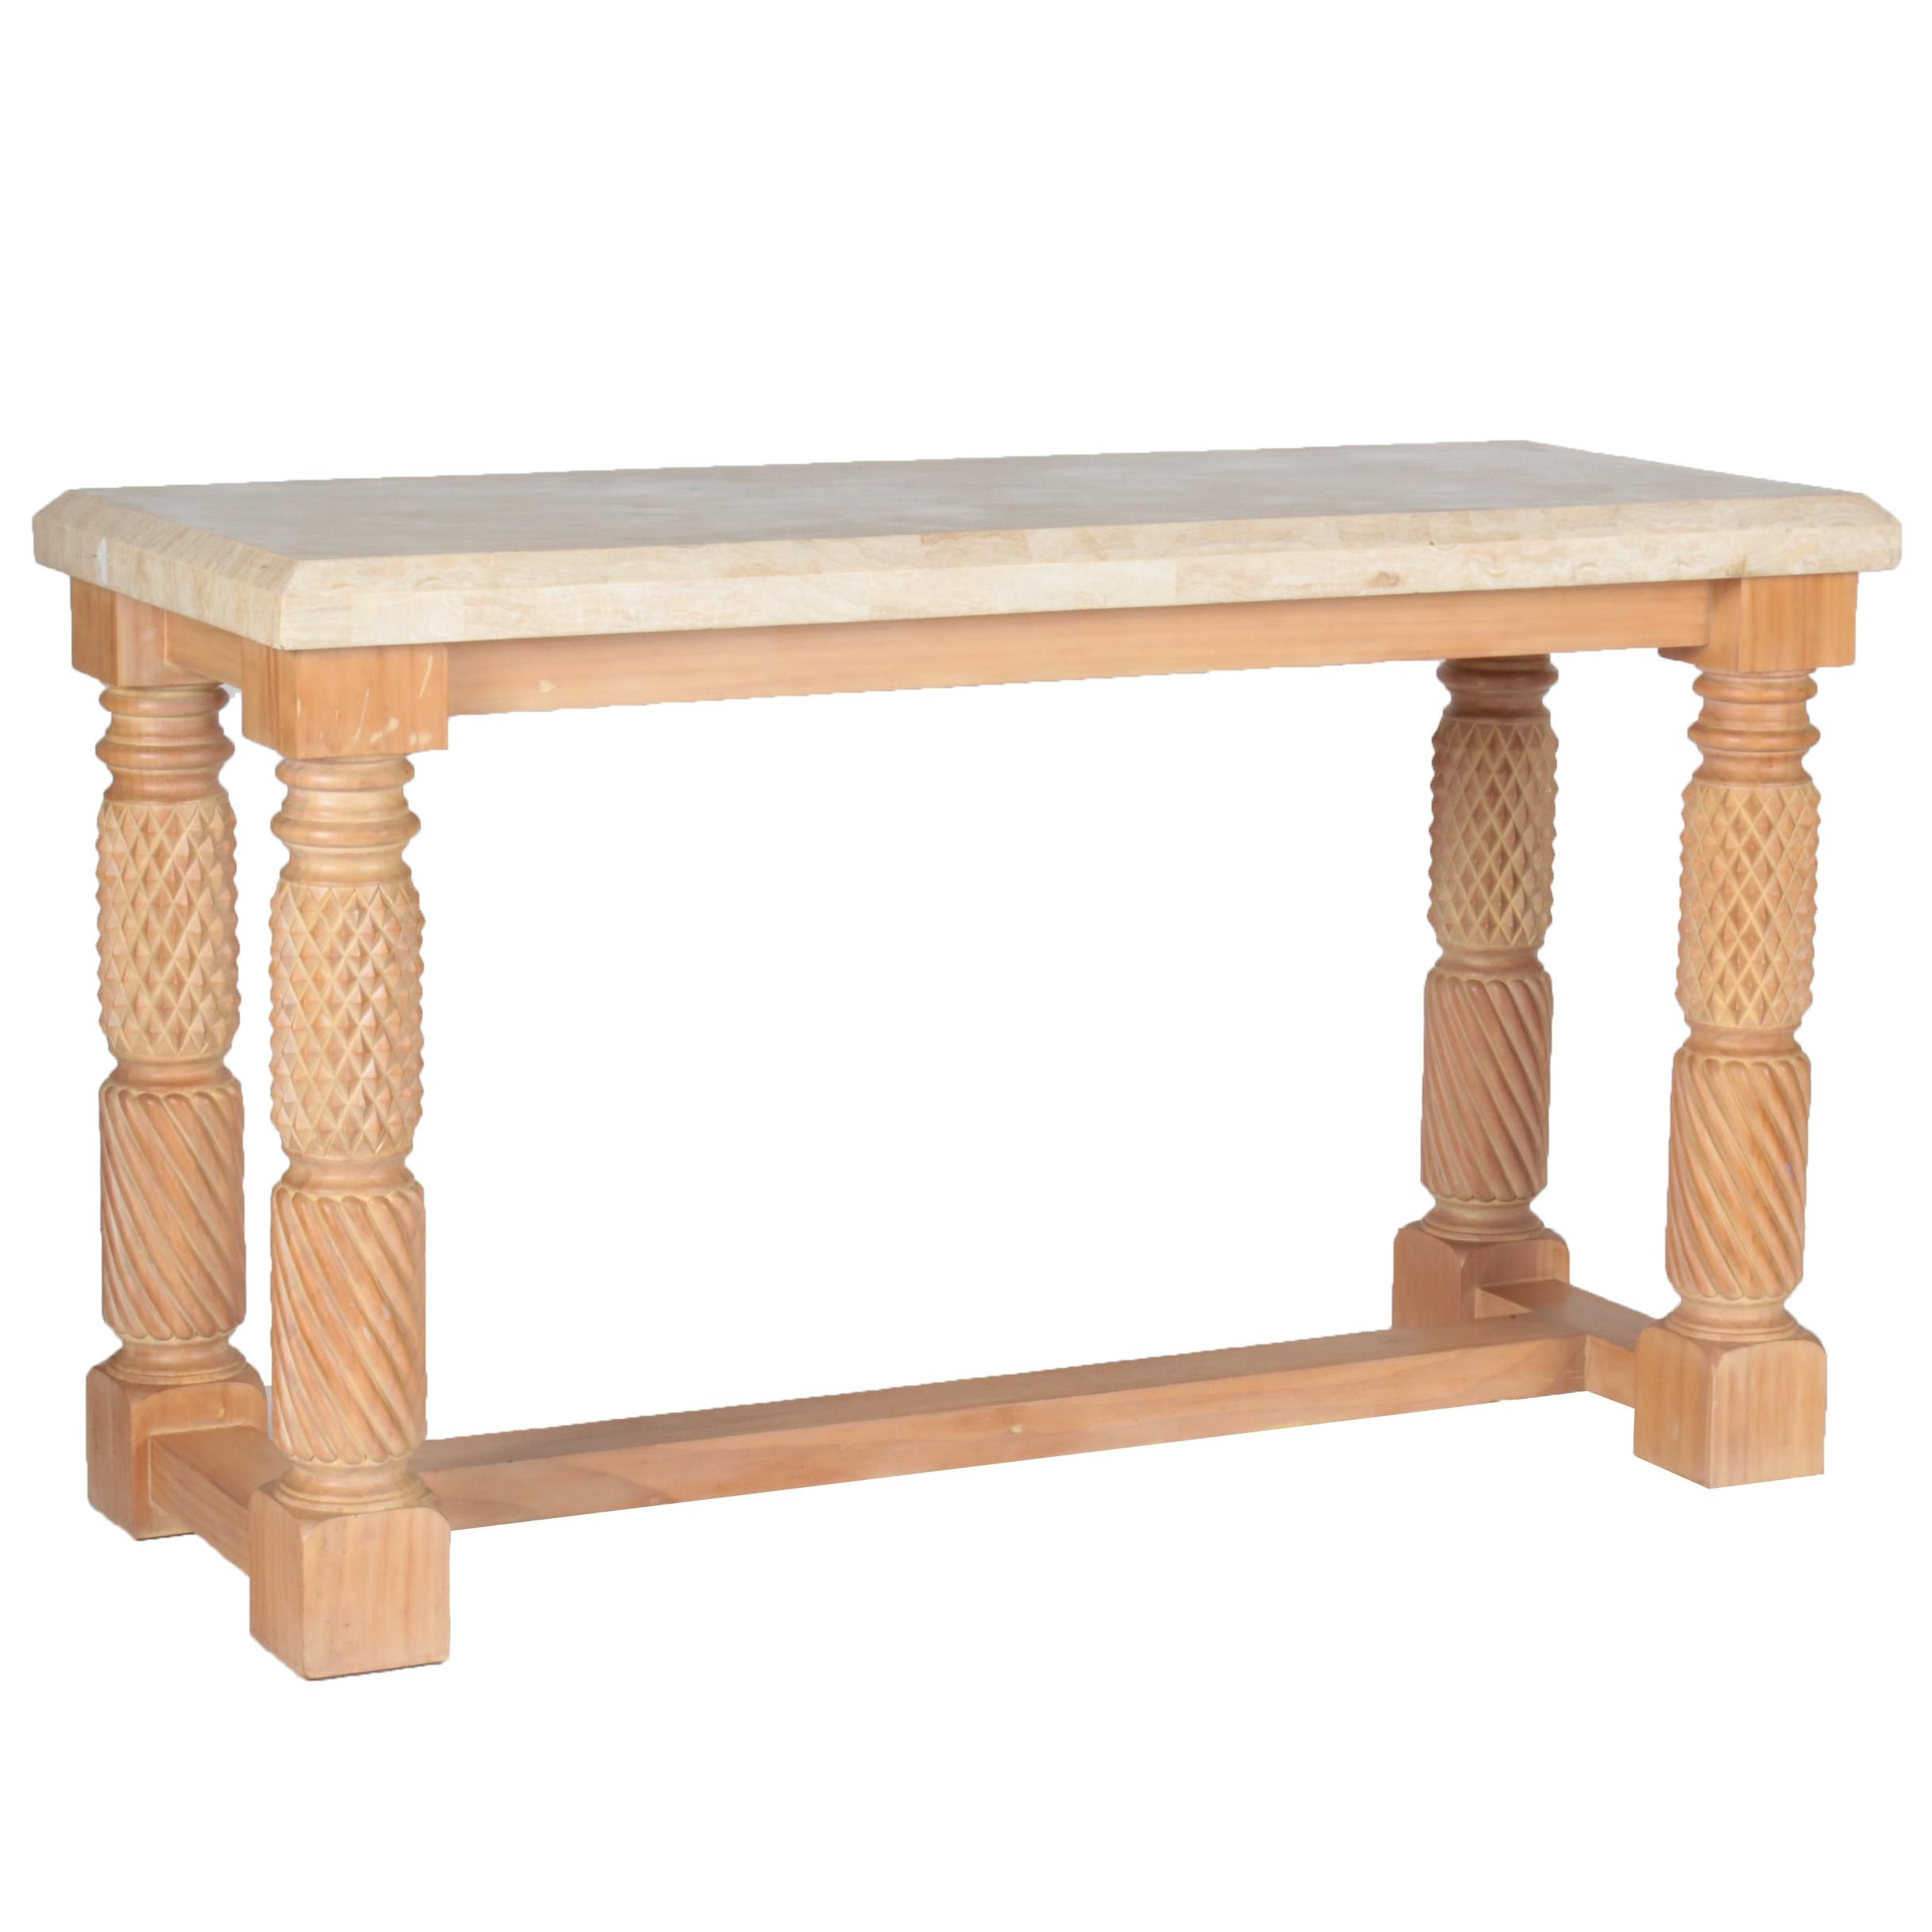 Lexington Furniture Pine Console Table with Stone Top